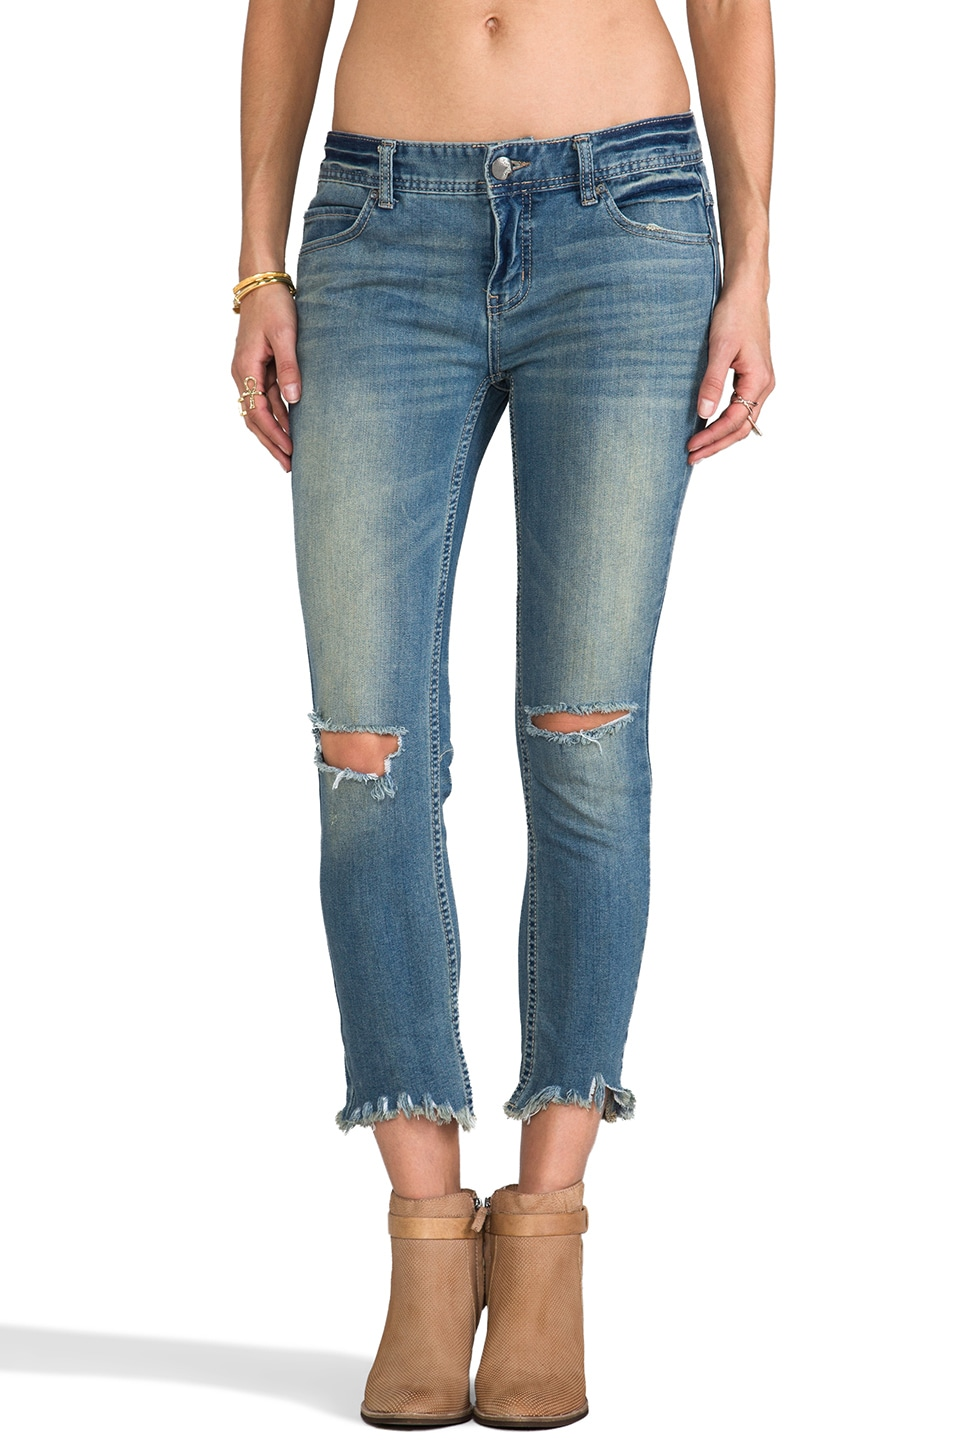 Free People Mid Rise Skinny Destroyed Ankle in Sitka Wash